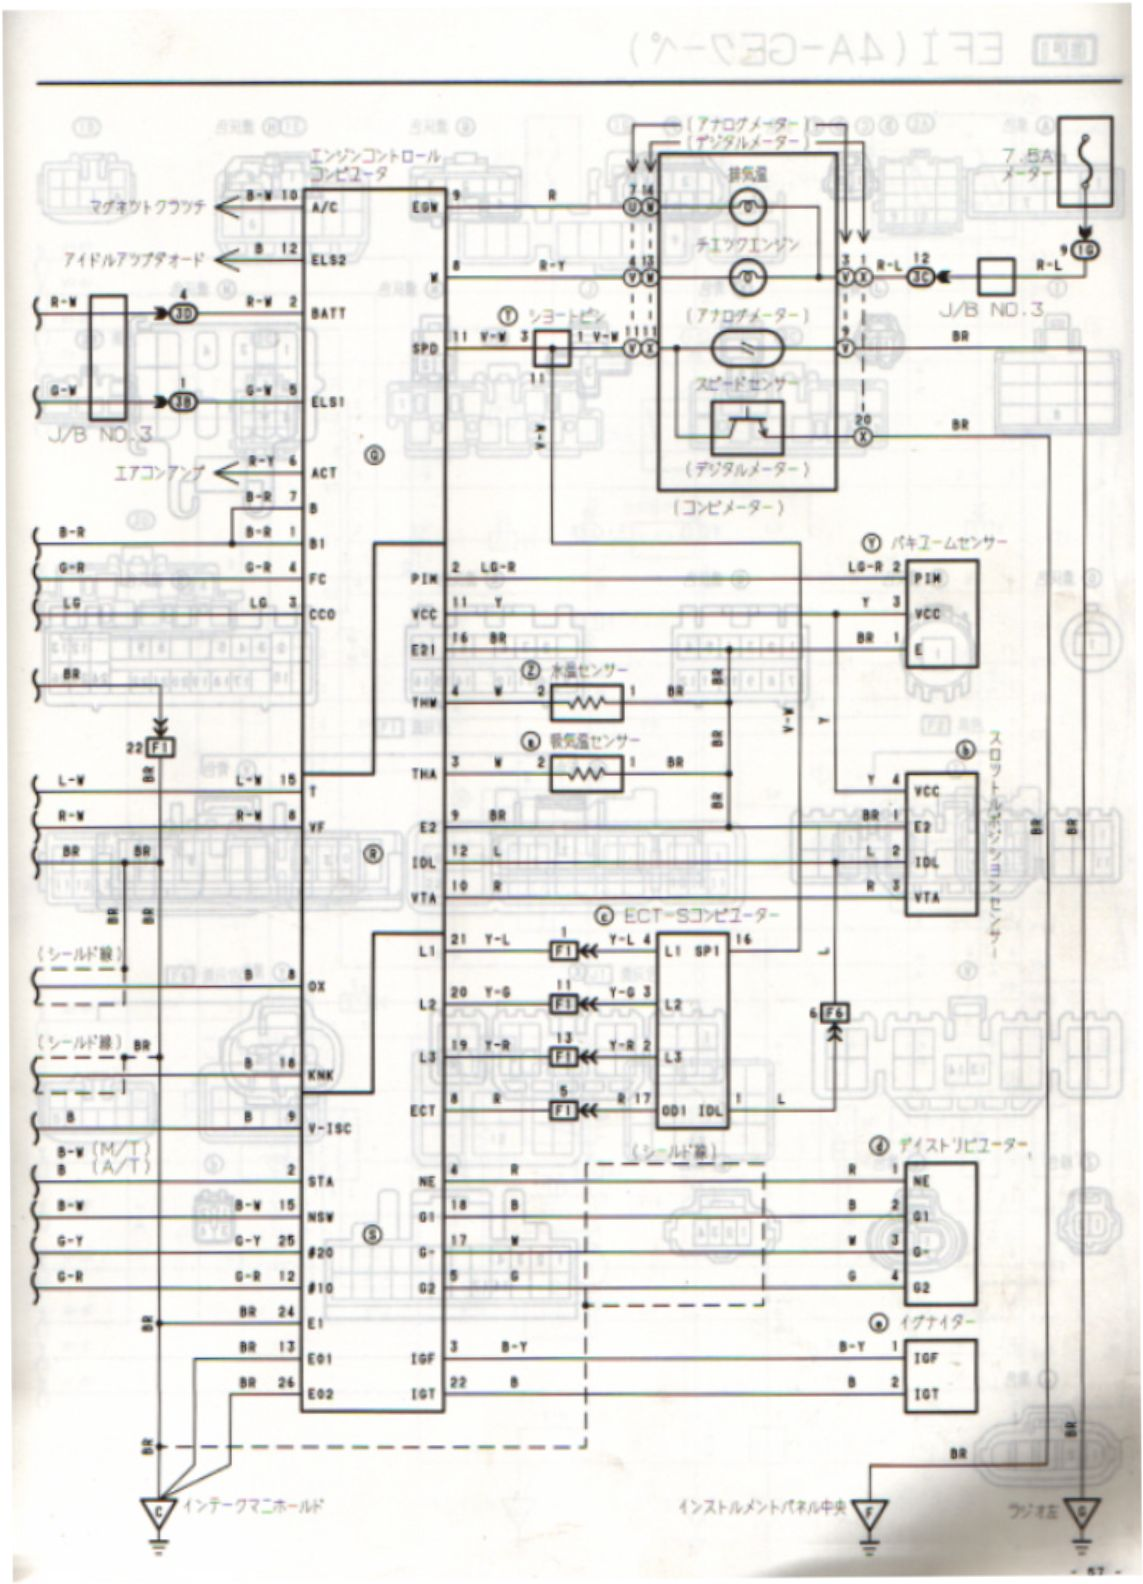 ae86 wiring diagram dc2 wiring diagram \u2022 wiring diagrams j 2005 corolla wiring diagram at readyjetset.co